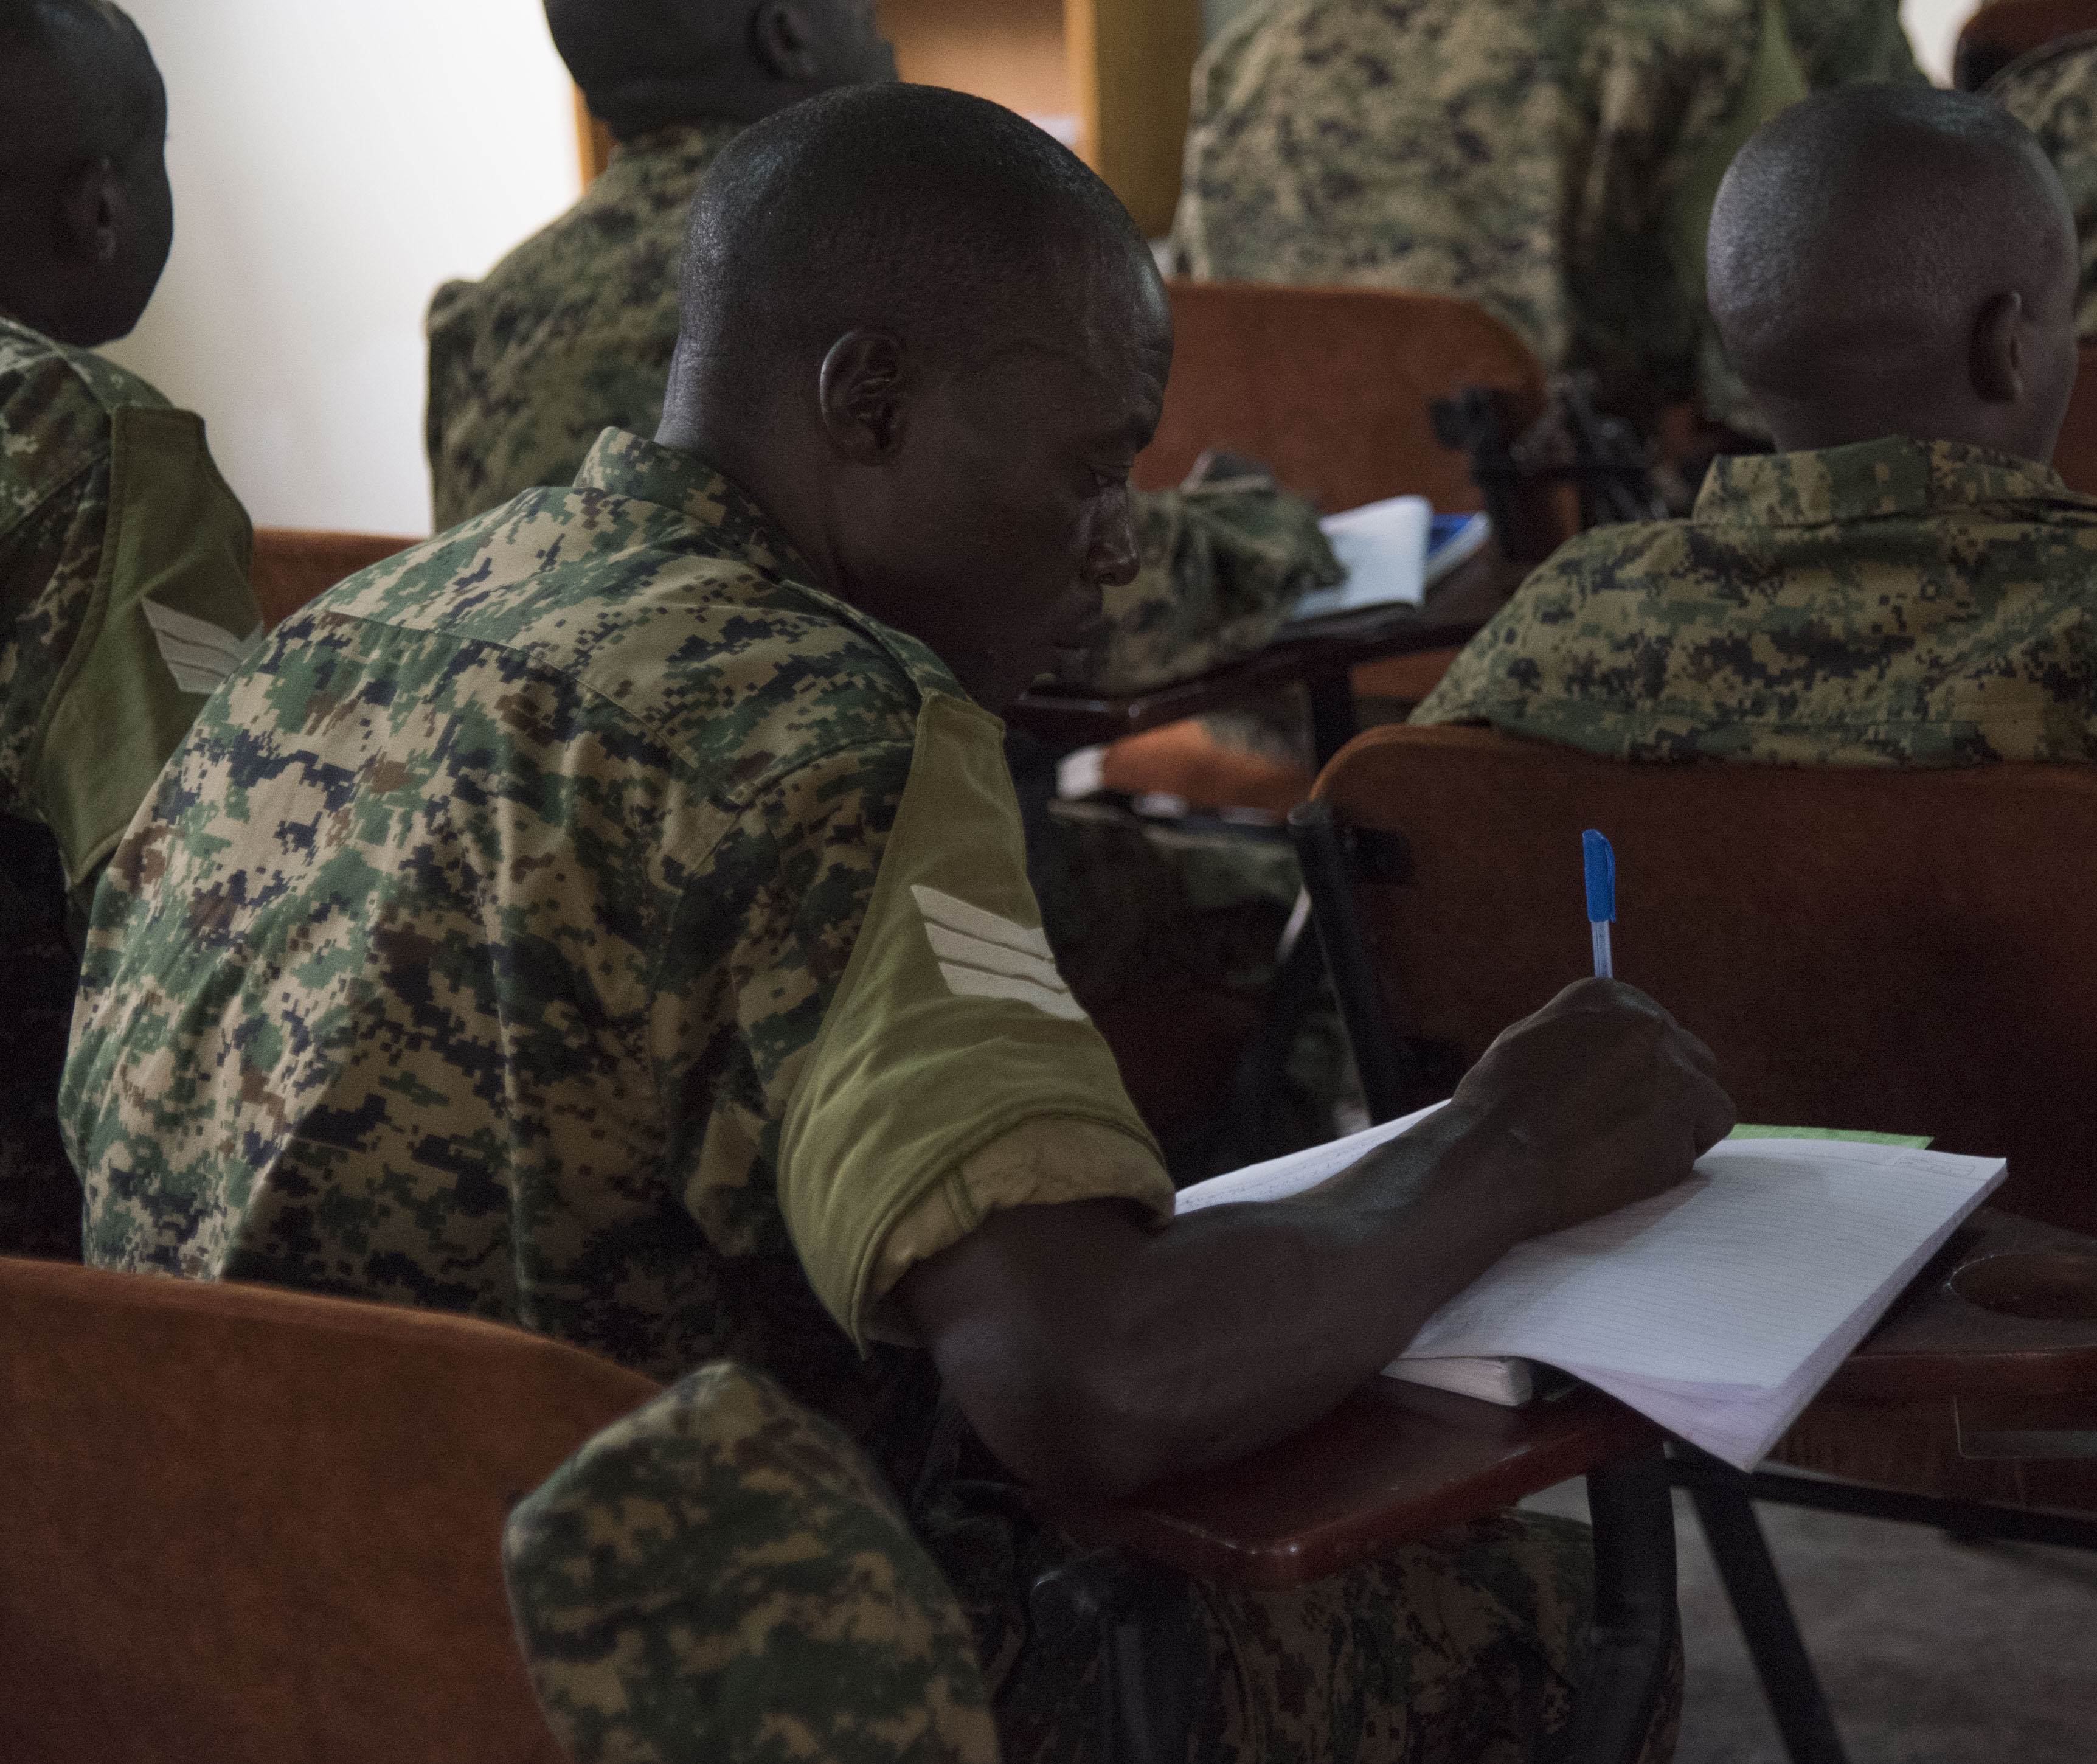 A Uganda People's Defence Force (UPDF) soldier takes notes during a Civil Affairs (CA) Tactical Company Course, hosted by the 407th Civil Affairs (CA) Battalion, attached to the Combined Joint Task Force - Horn of Africa, at Camp Singo, Uganda, Feb. 08, 2018. CJTF-HOA service members are forward deployed to Camp Singo to advise and assist the UPDF in preparing Ugandan Battle Group 25 for an upcoming deployment in support of the African Union Mission in Somalia (AMISOM). (U.S. Air National Guard photo by Staff Sgt. Allyson L. Manners)